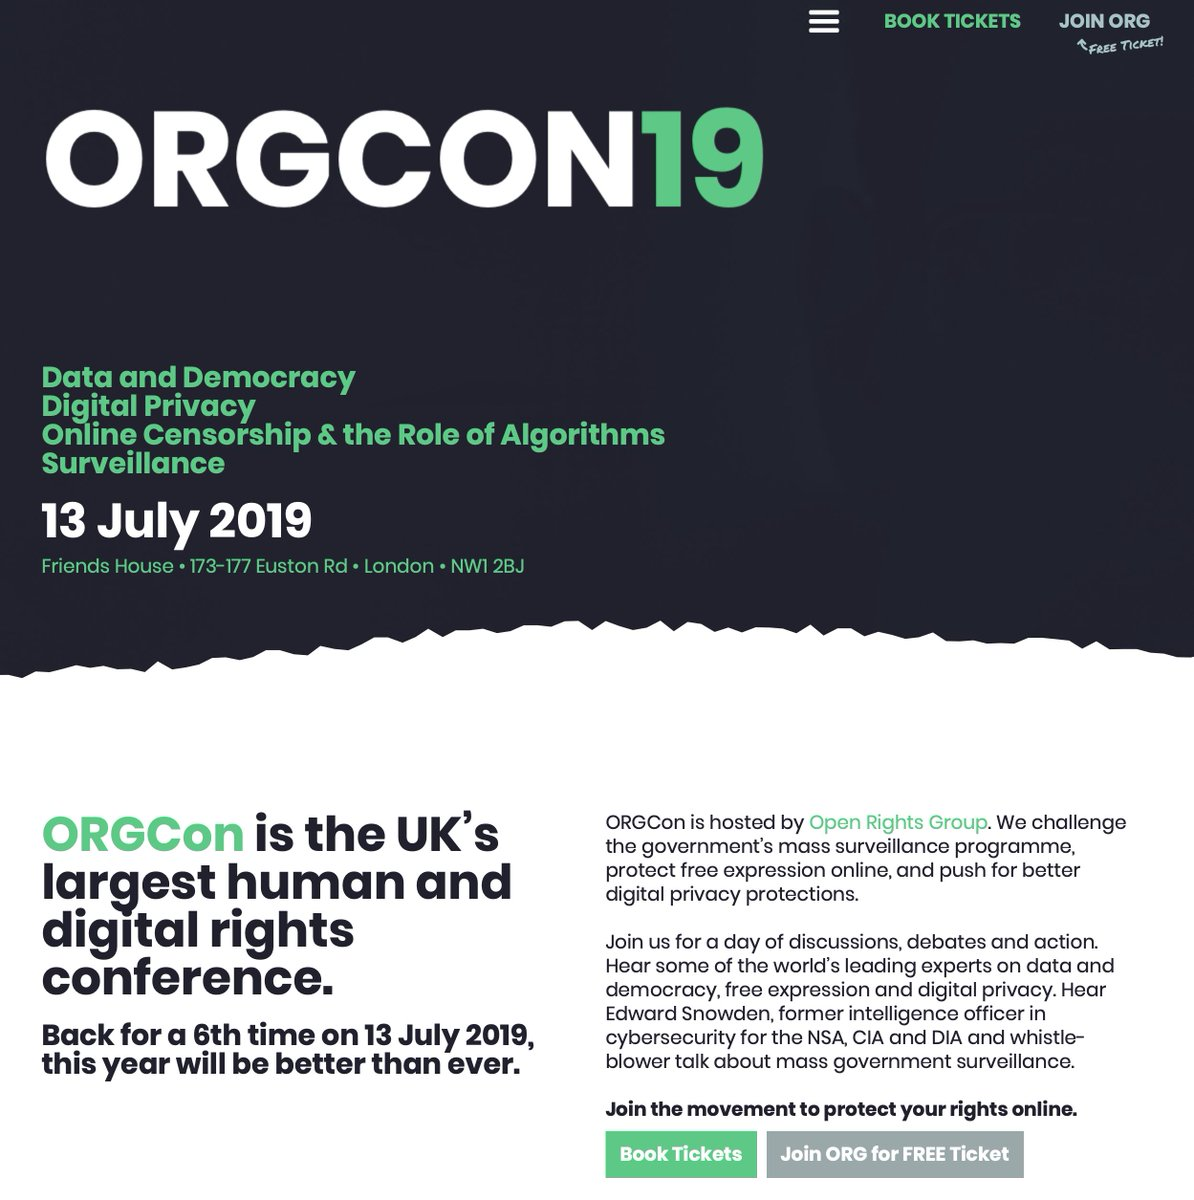 So: don't listen to the haters, they're just scared.  Also: if you care about digital rights, consider coming to #orgcon2019 on 13 July 2019 in London, with keynote speaker Edward @Snowden:   https://orgcon.openrightsgroup.org/2019/